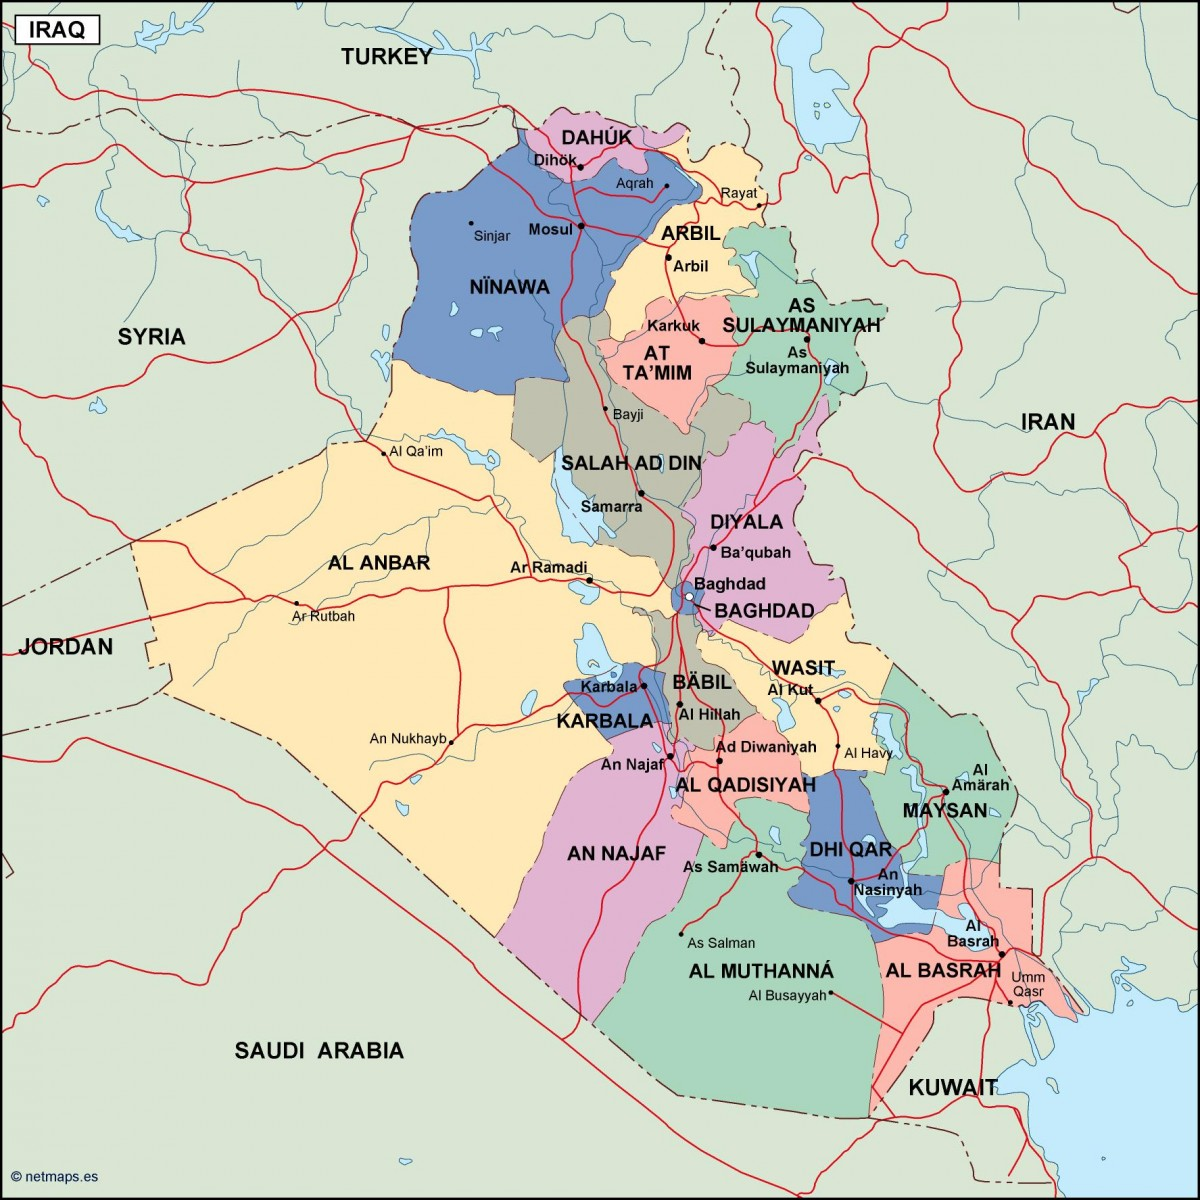 iraq political map Order and Download iraq political map made for